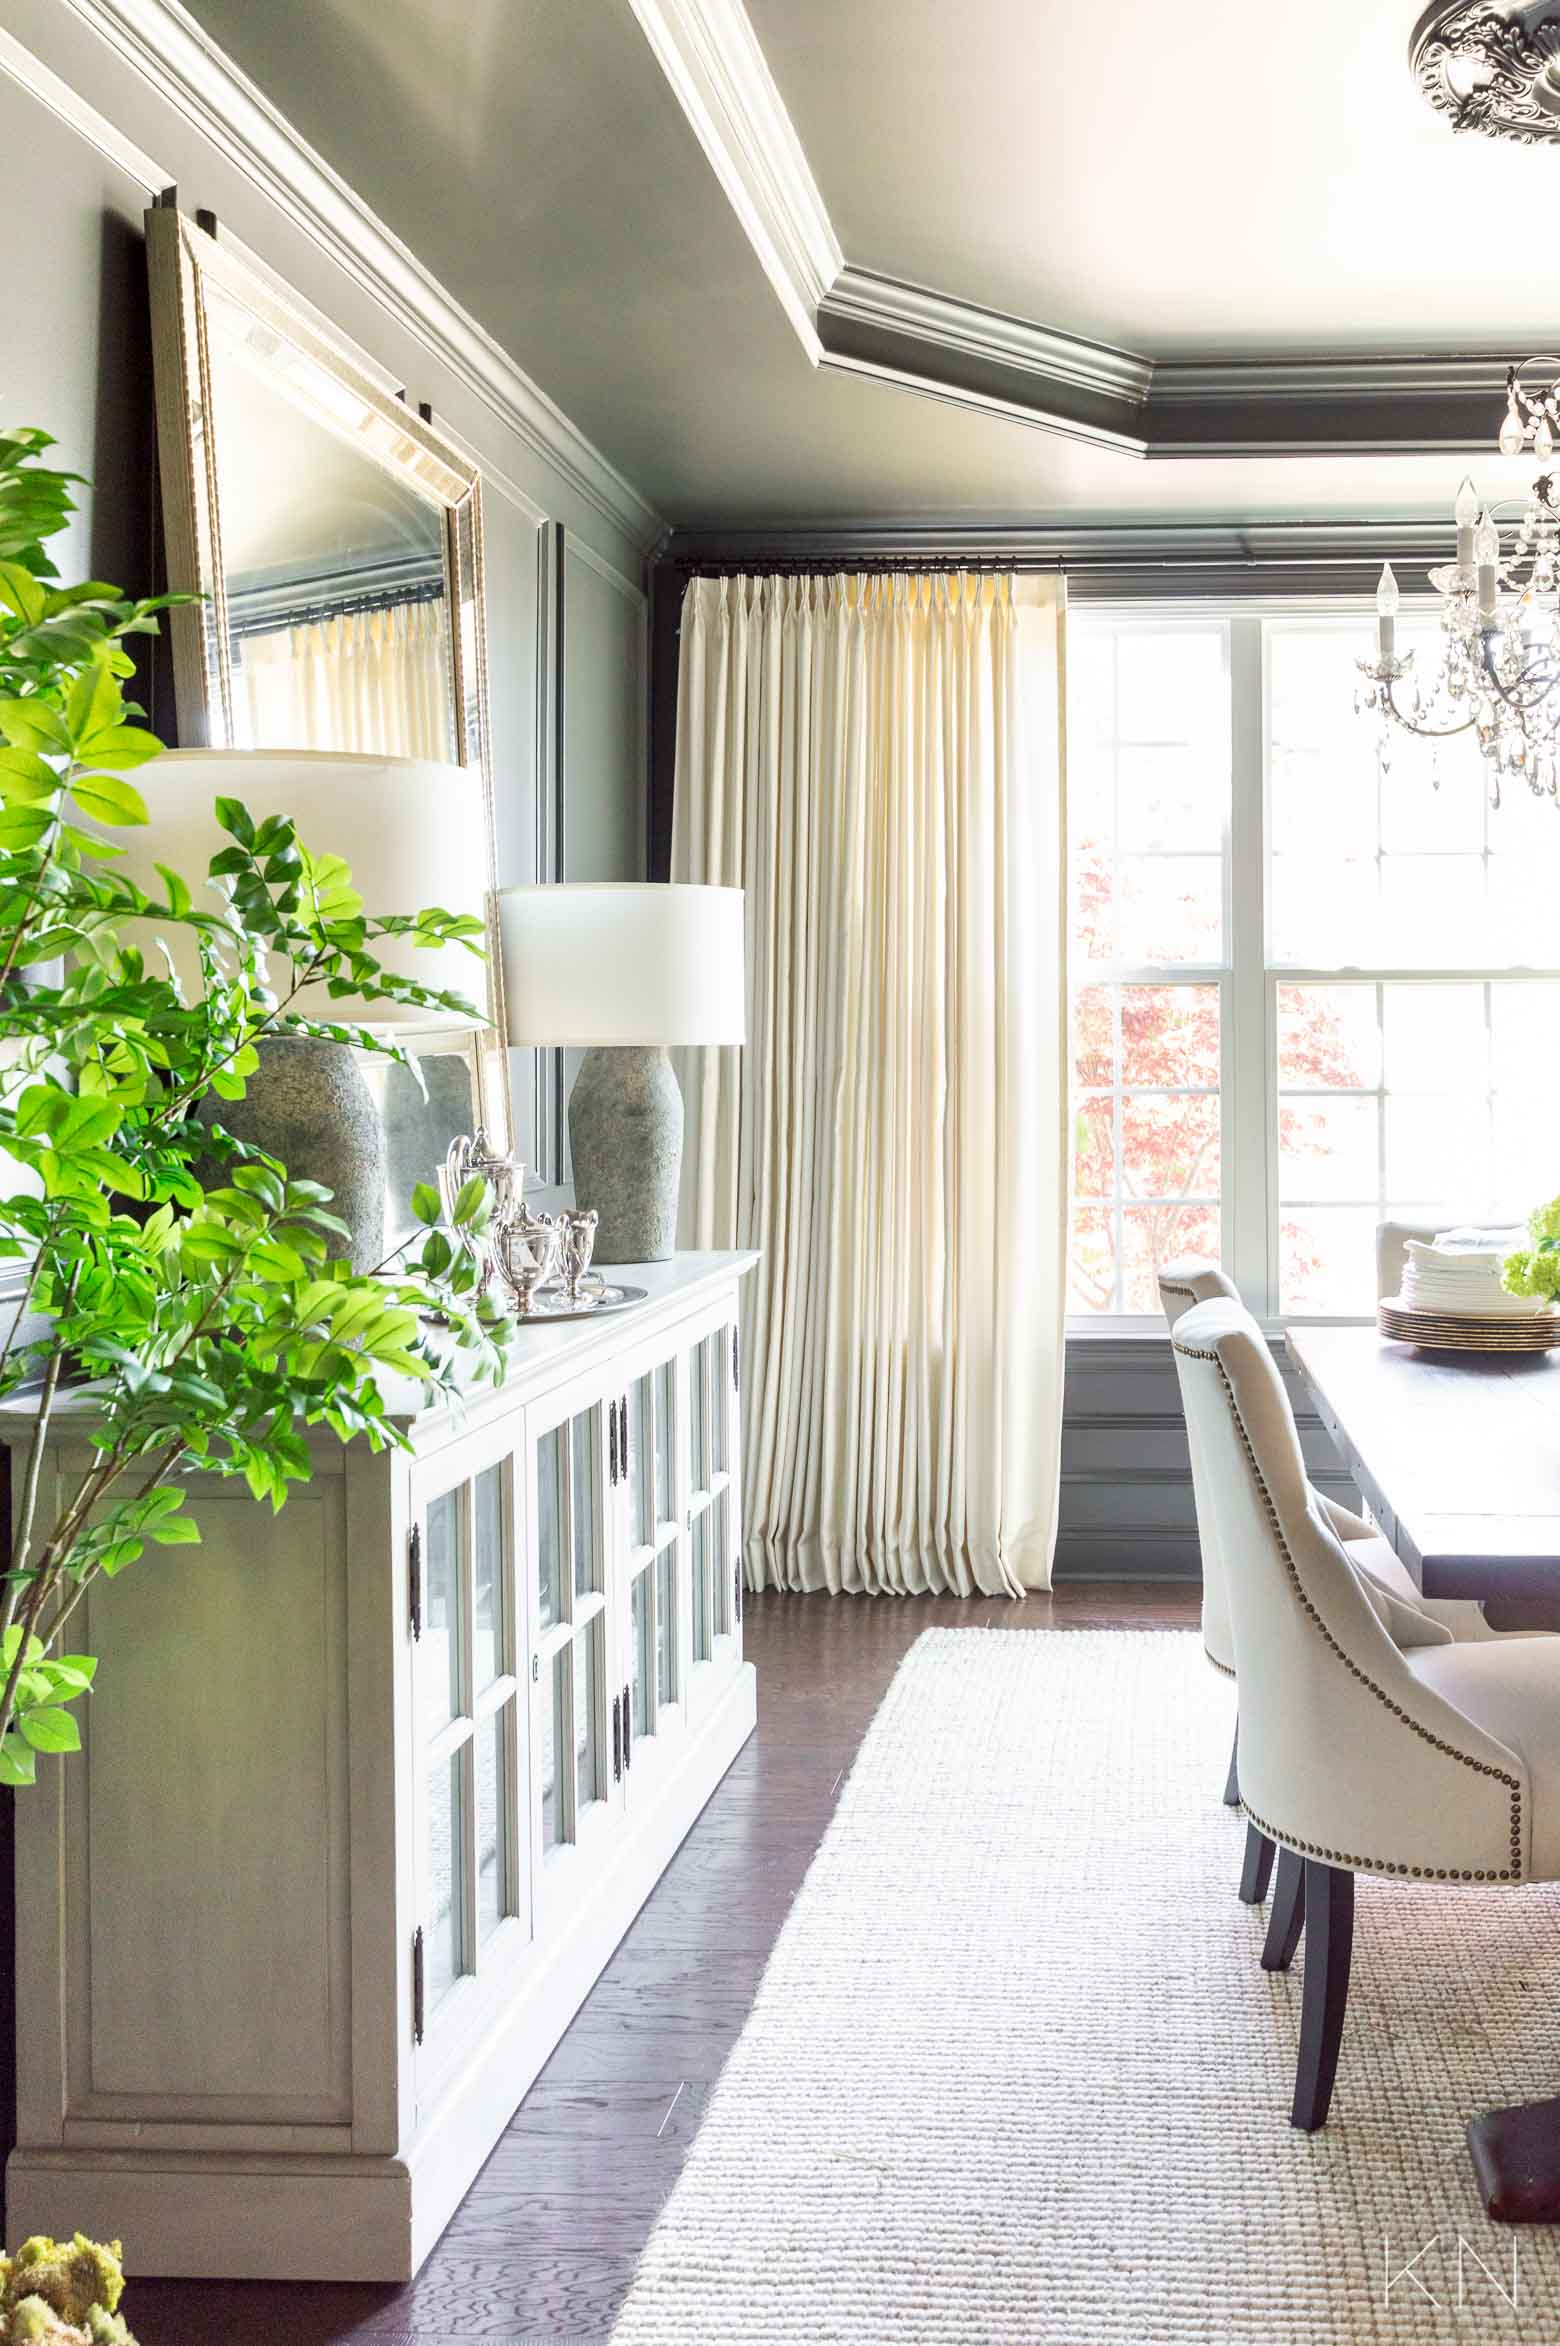 Favorite Custom Pleated Drapes for the Dining Room